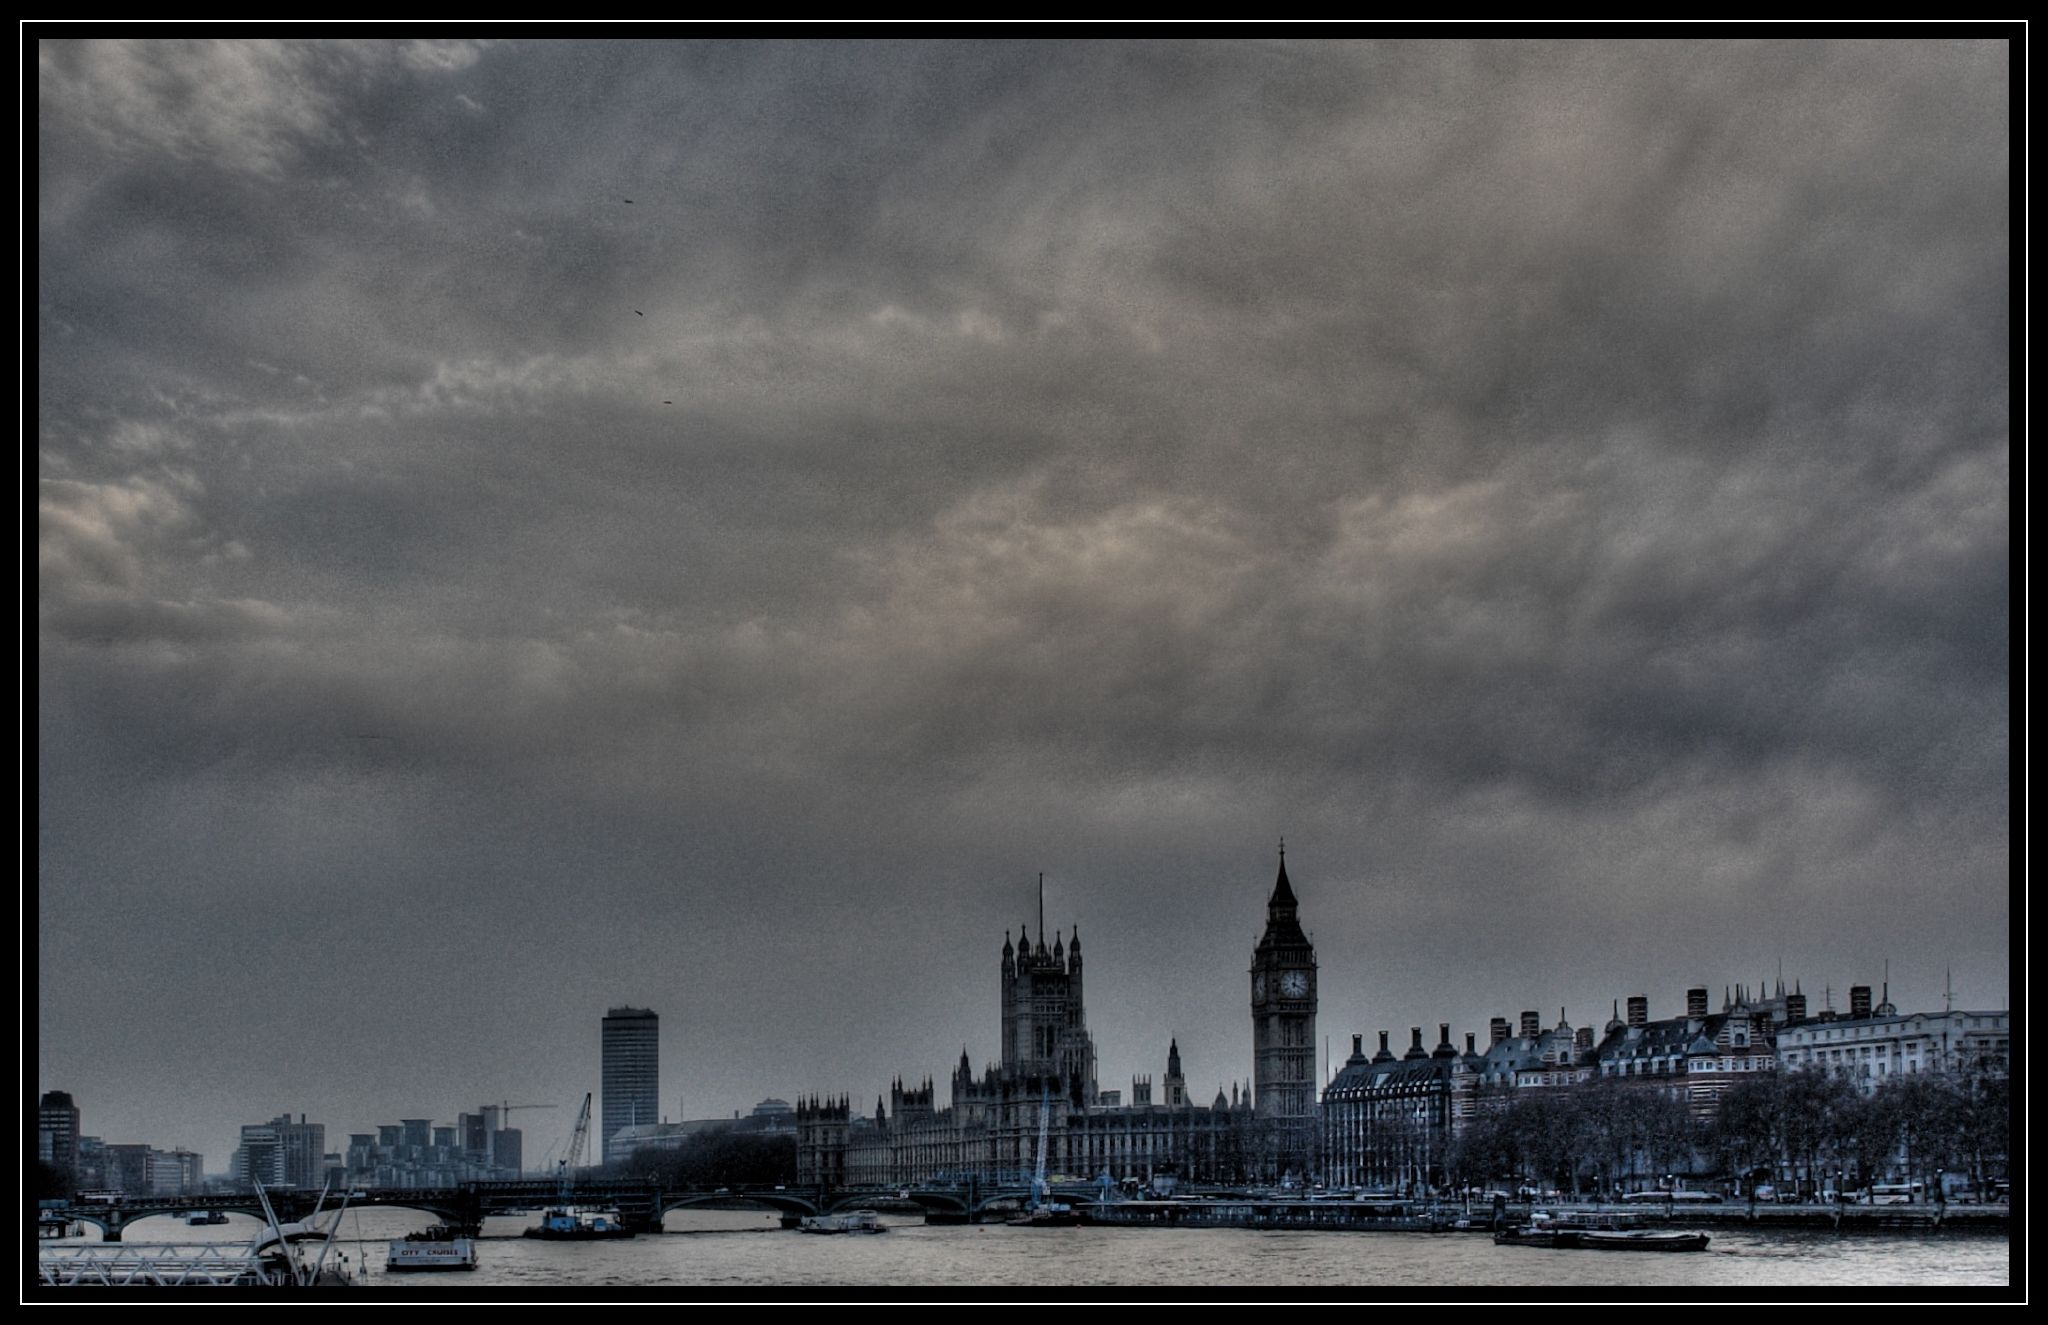 London westminster themse 4 hdr tone mapped rahmen